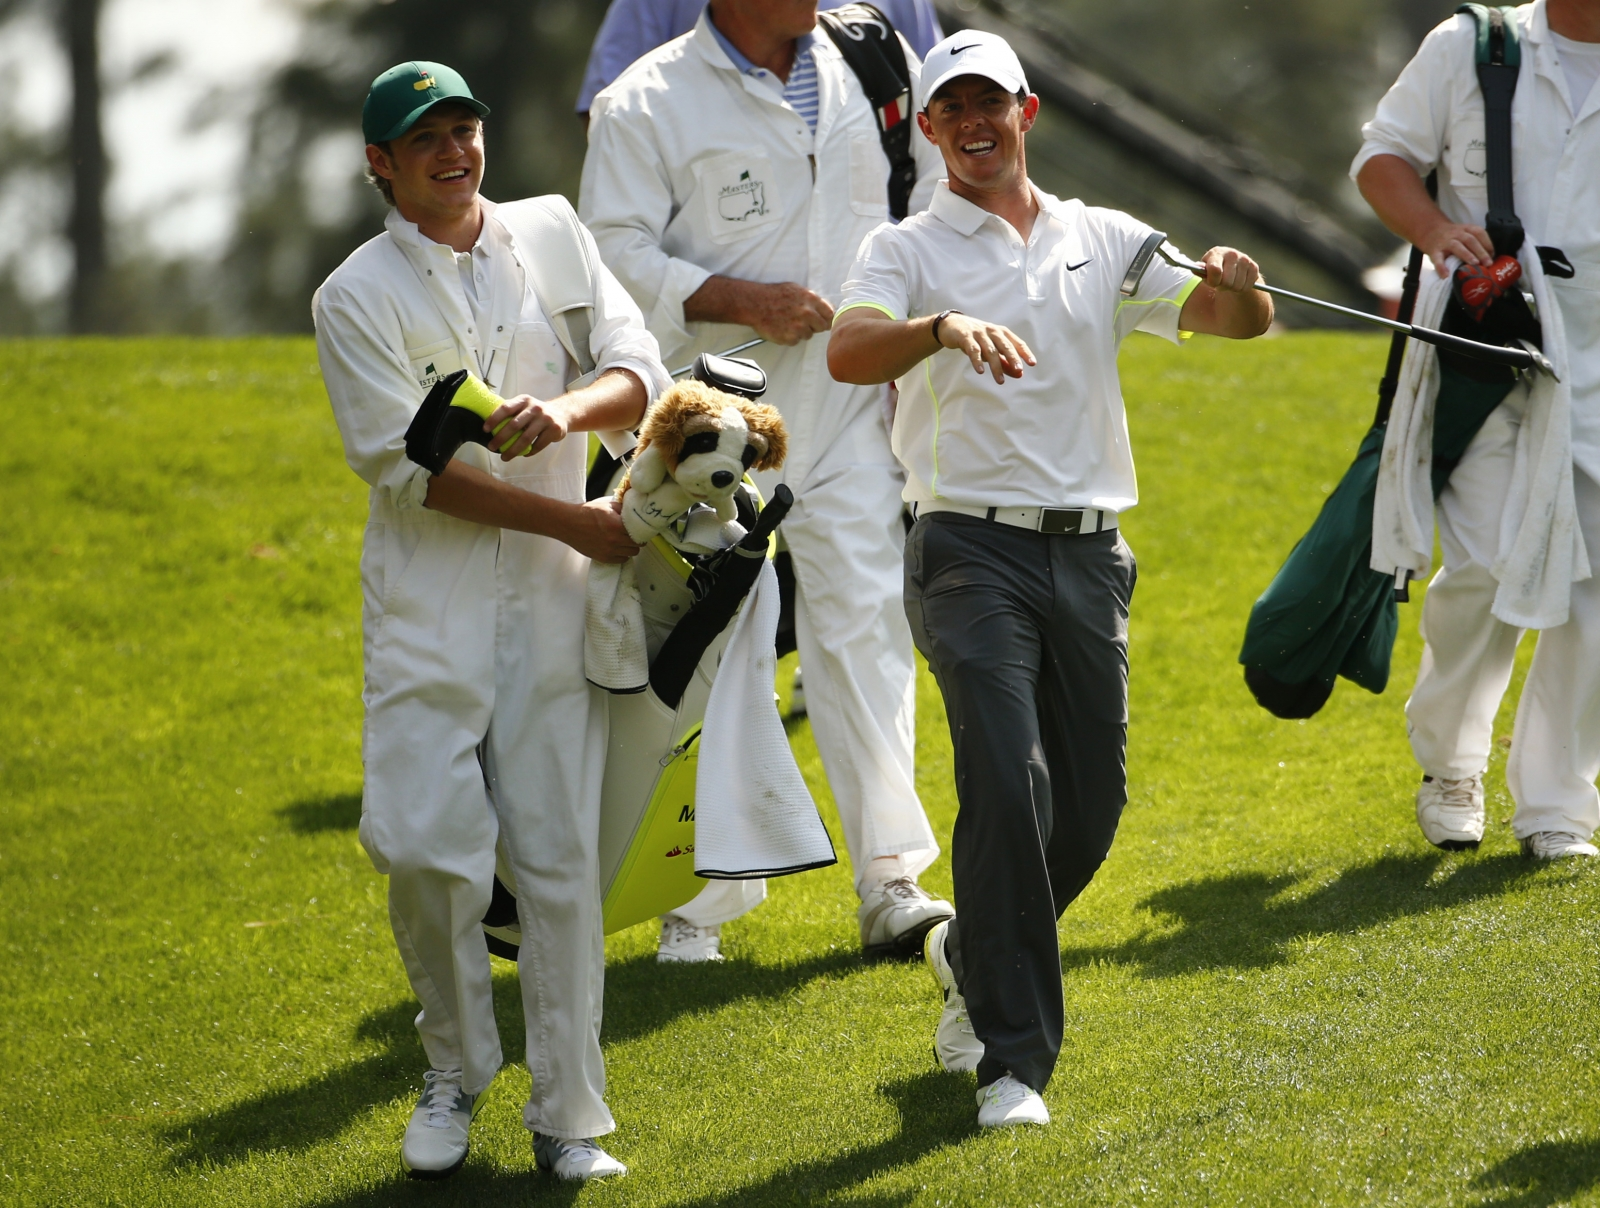 Niall Horan caddy